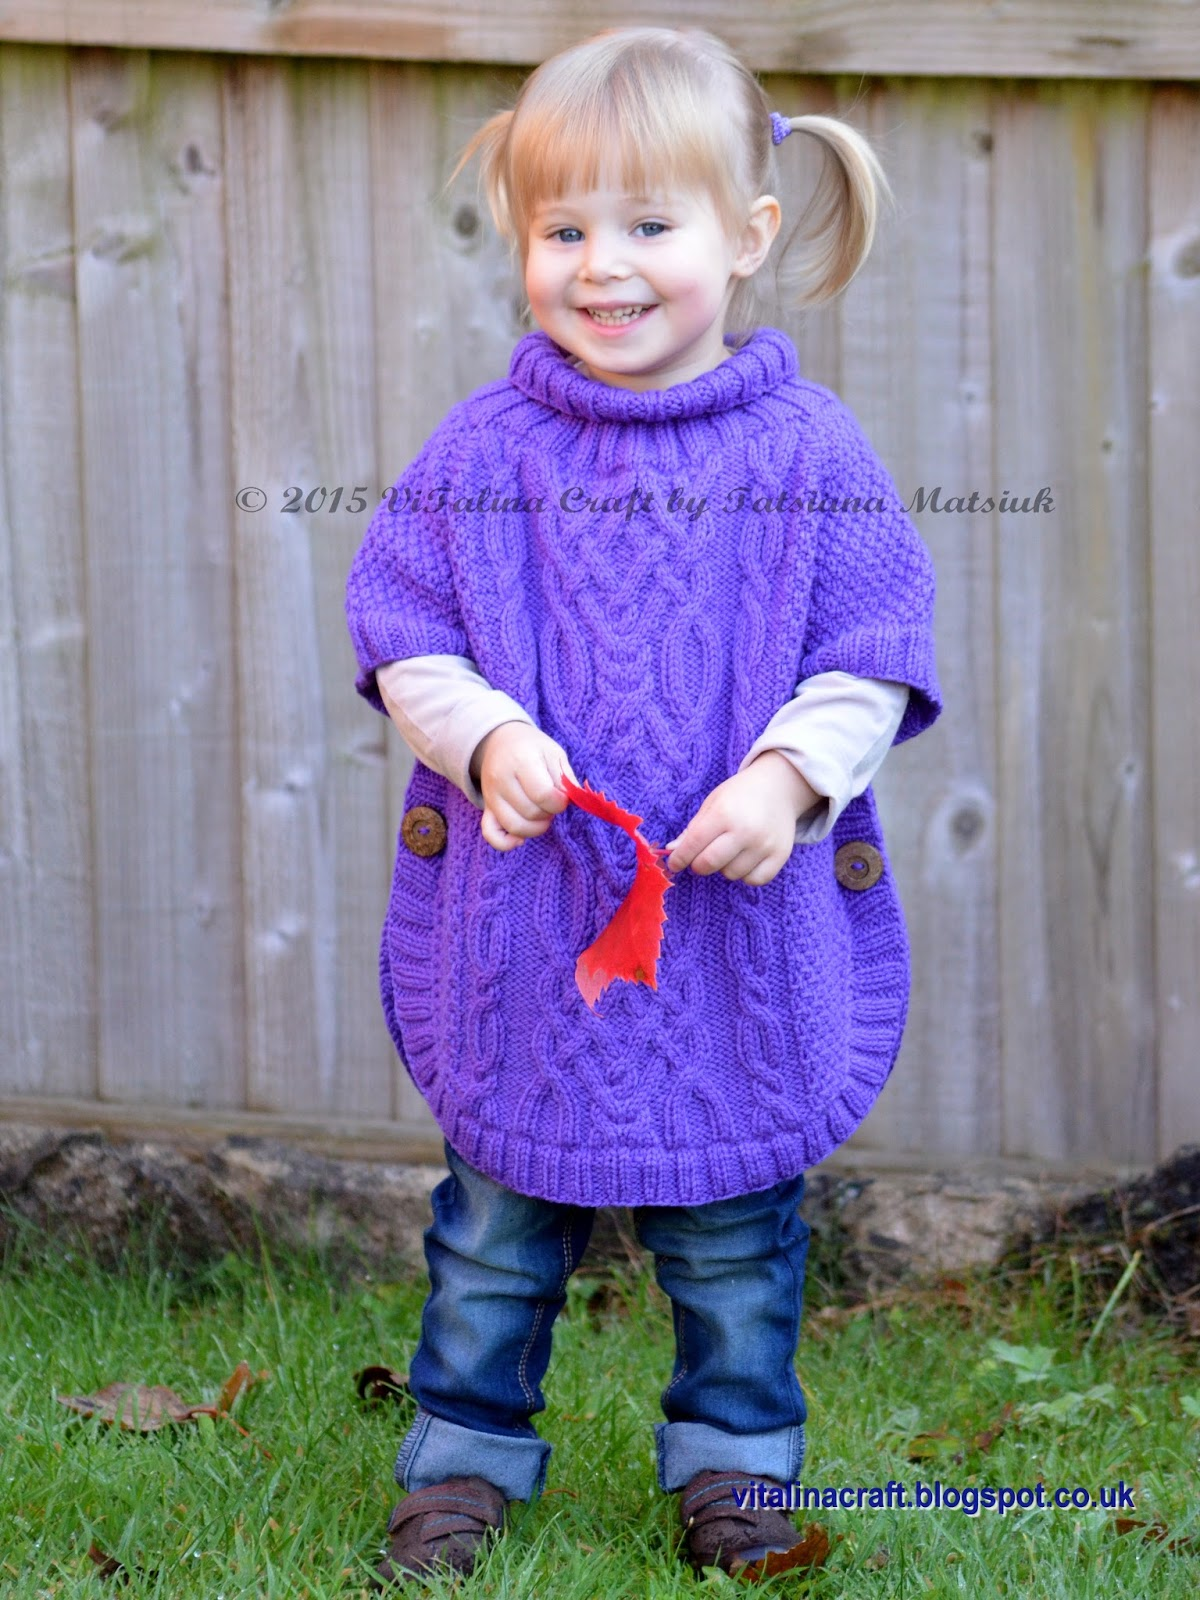 Knitting Patterns For Ponchos For Toddlers : Knitting Pattern - Cable Fantasy Poncho (Toddler and Child ...